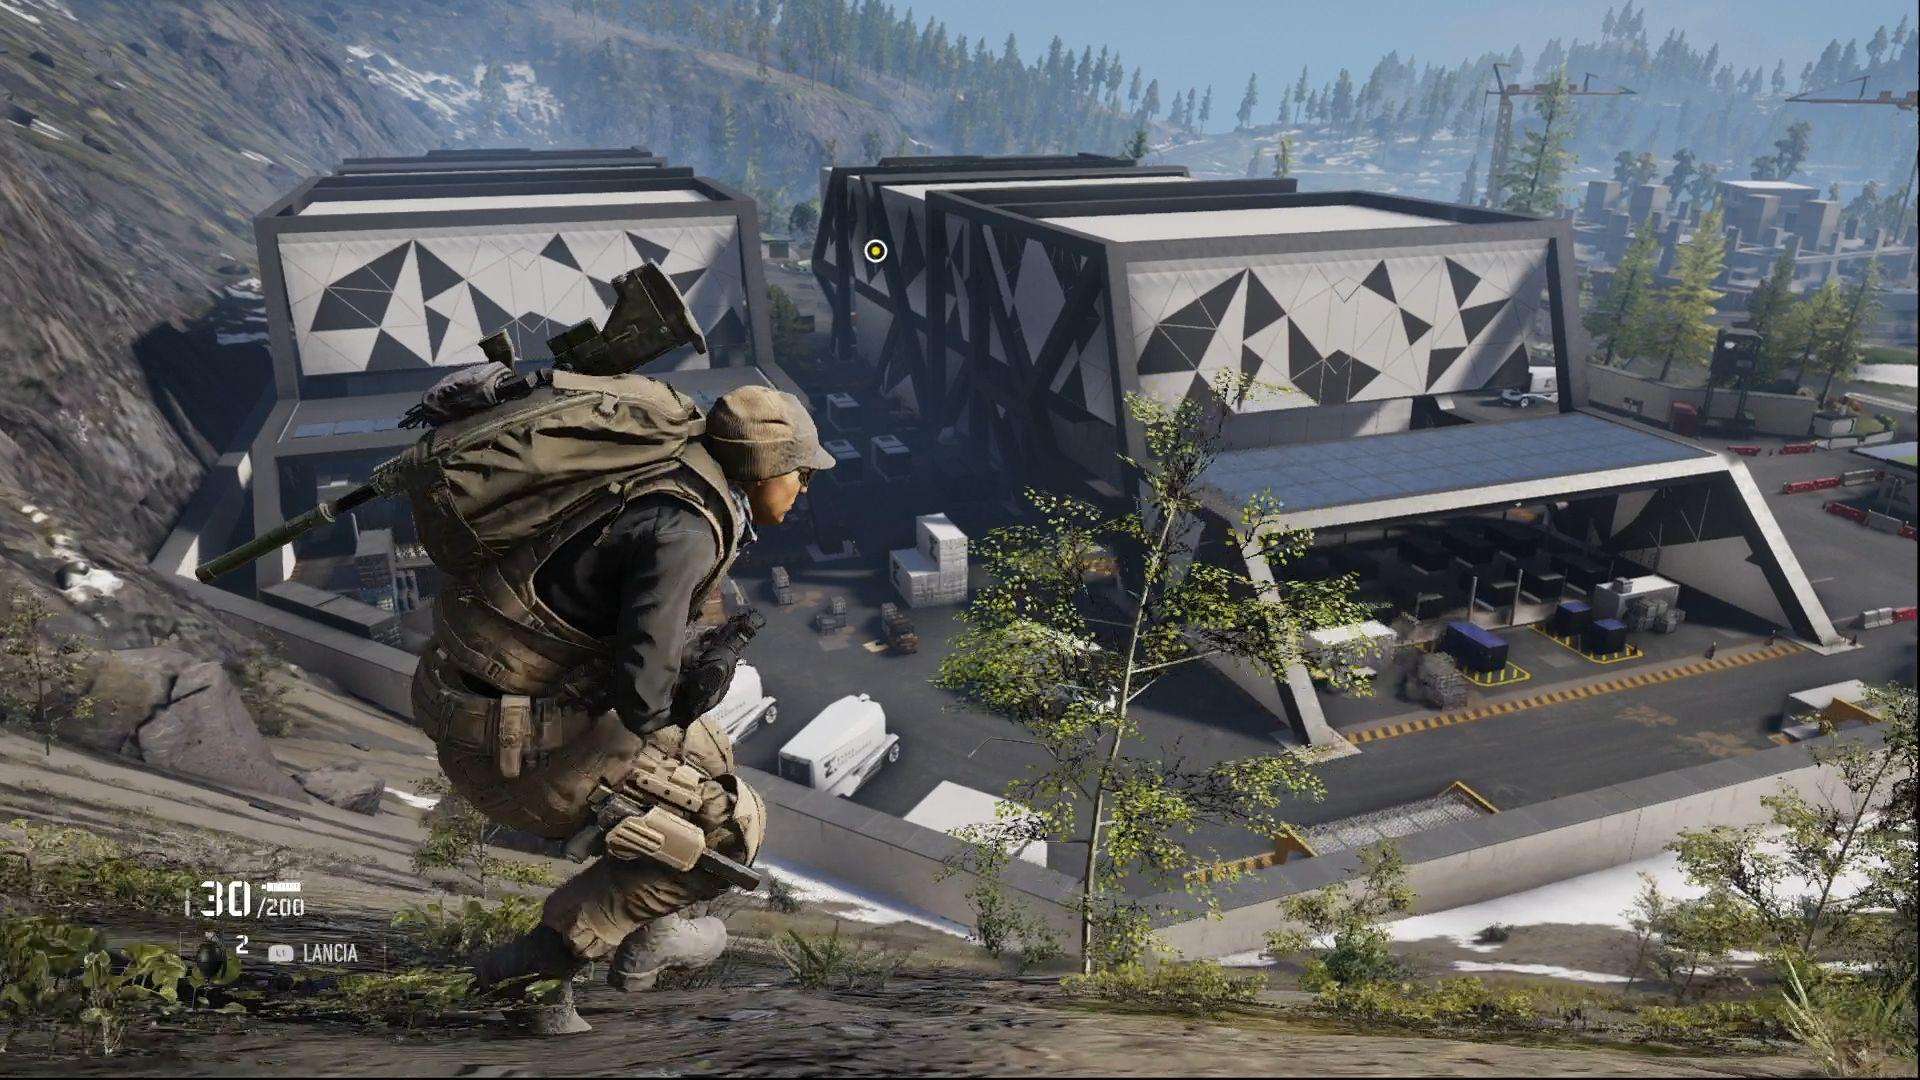 ghsot recon breakpoint recensione